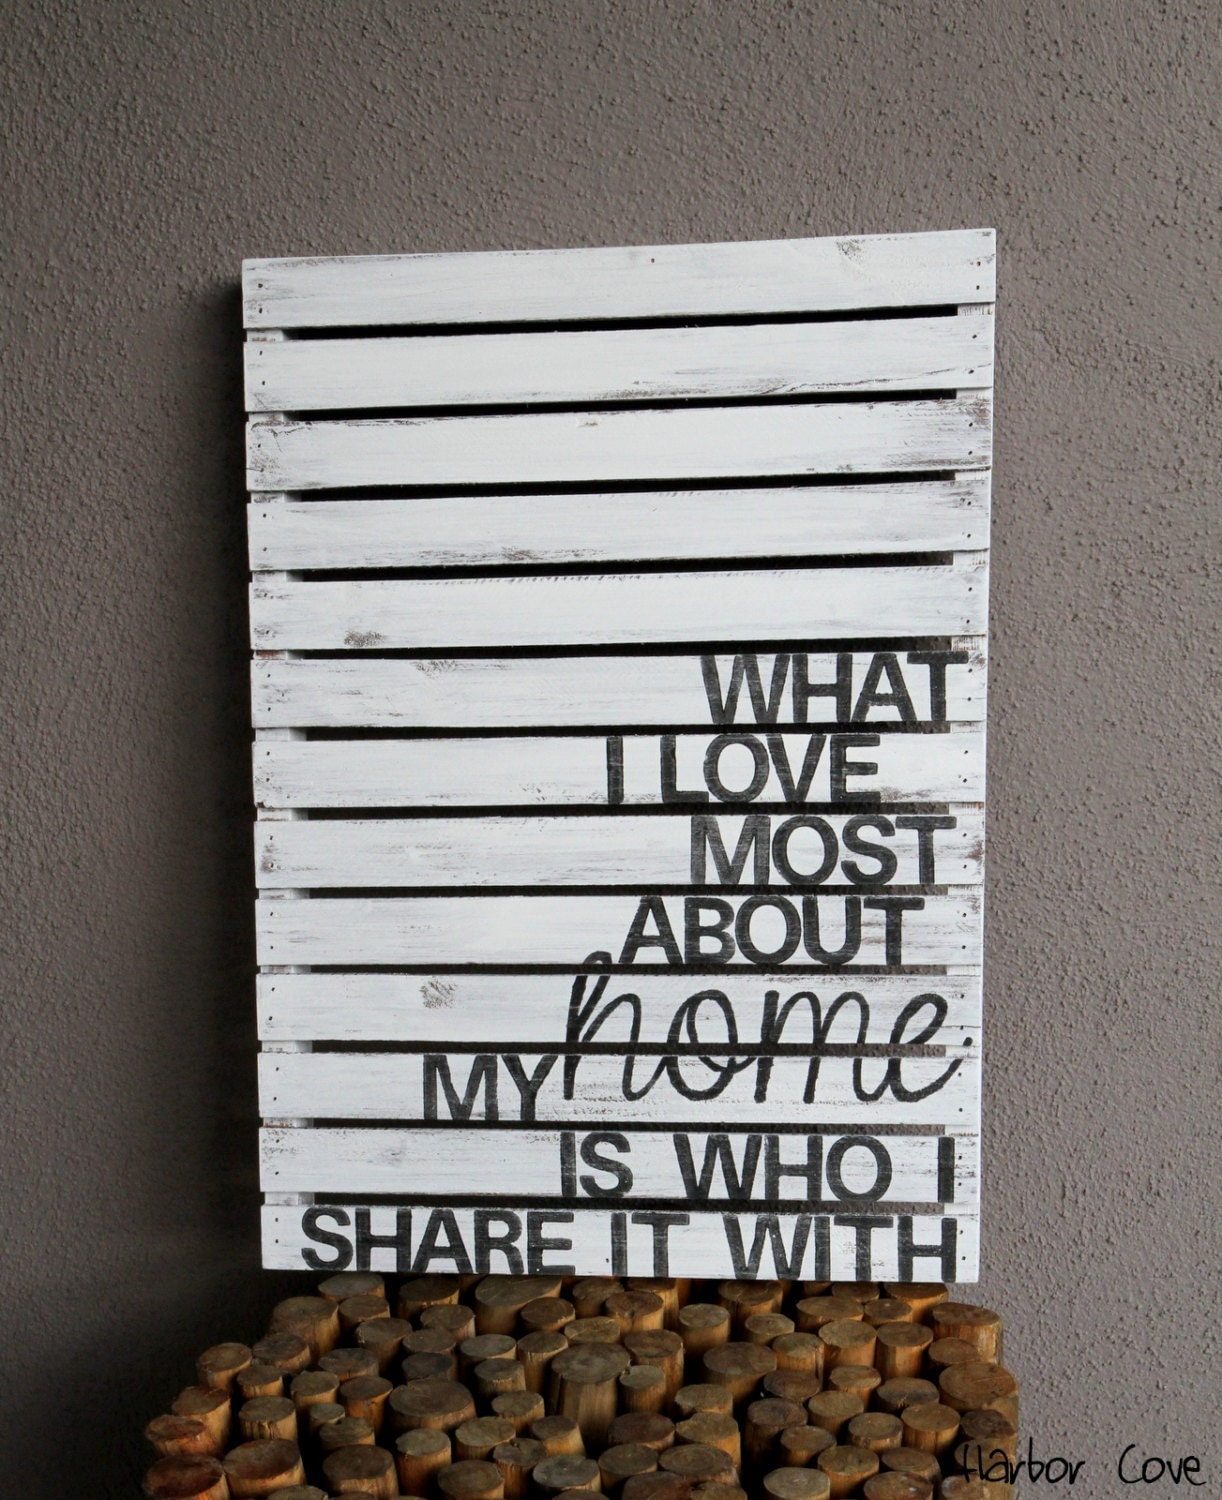 What I Love Most About My Home Is Who I Share It With- Rustic Pallet Wood Sign - HarborCove